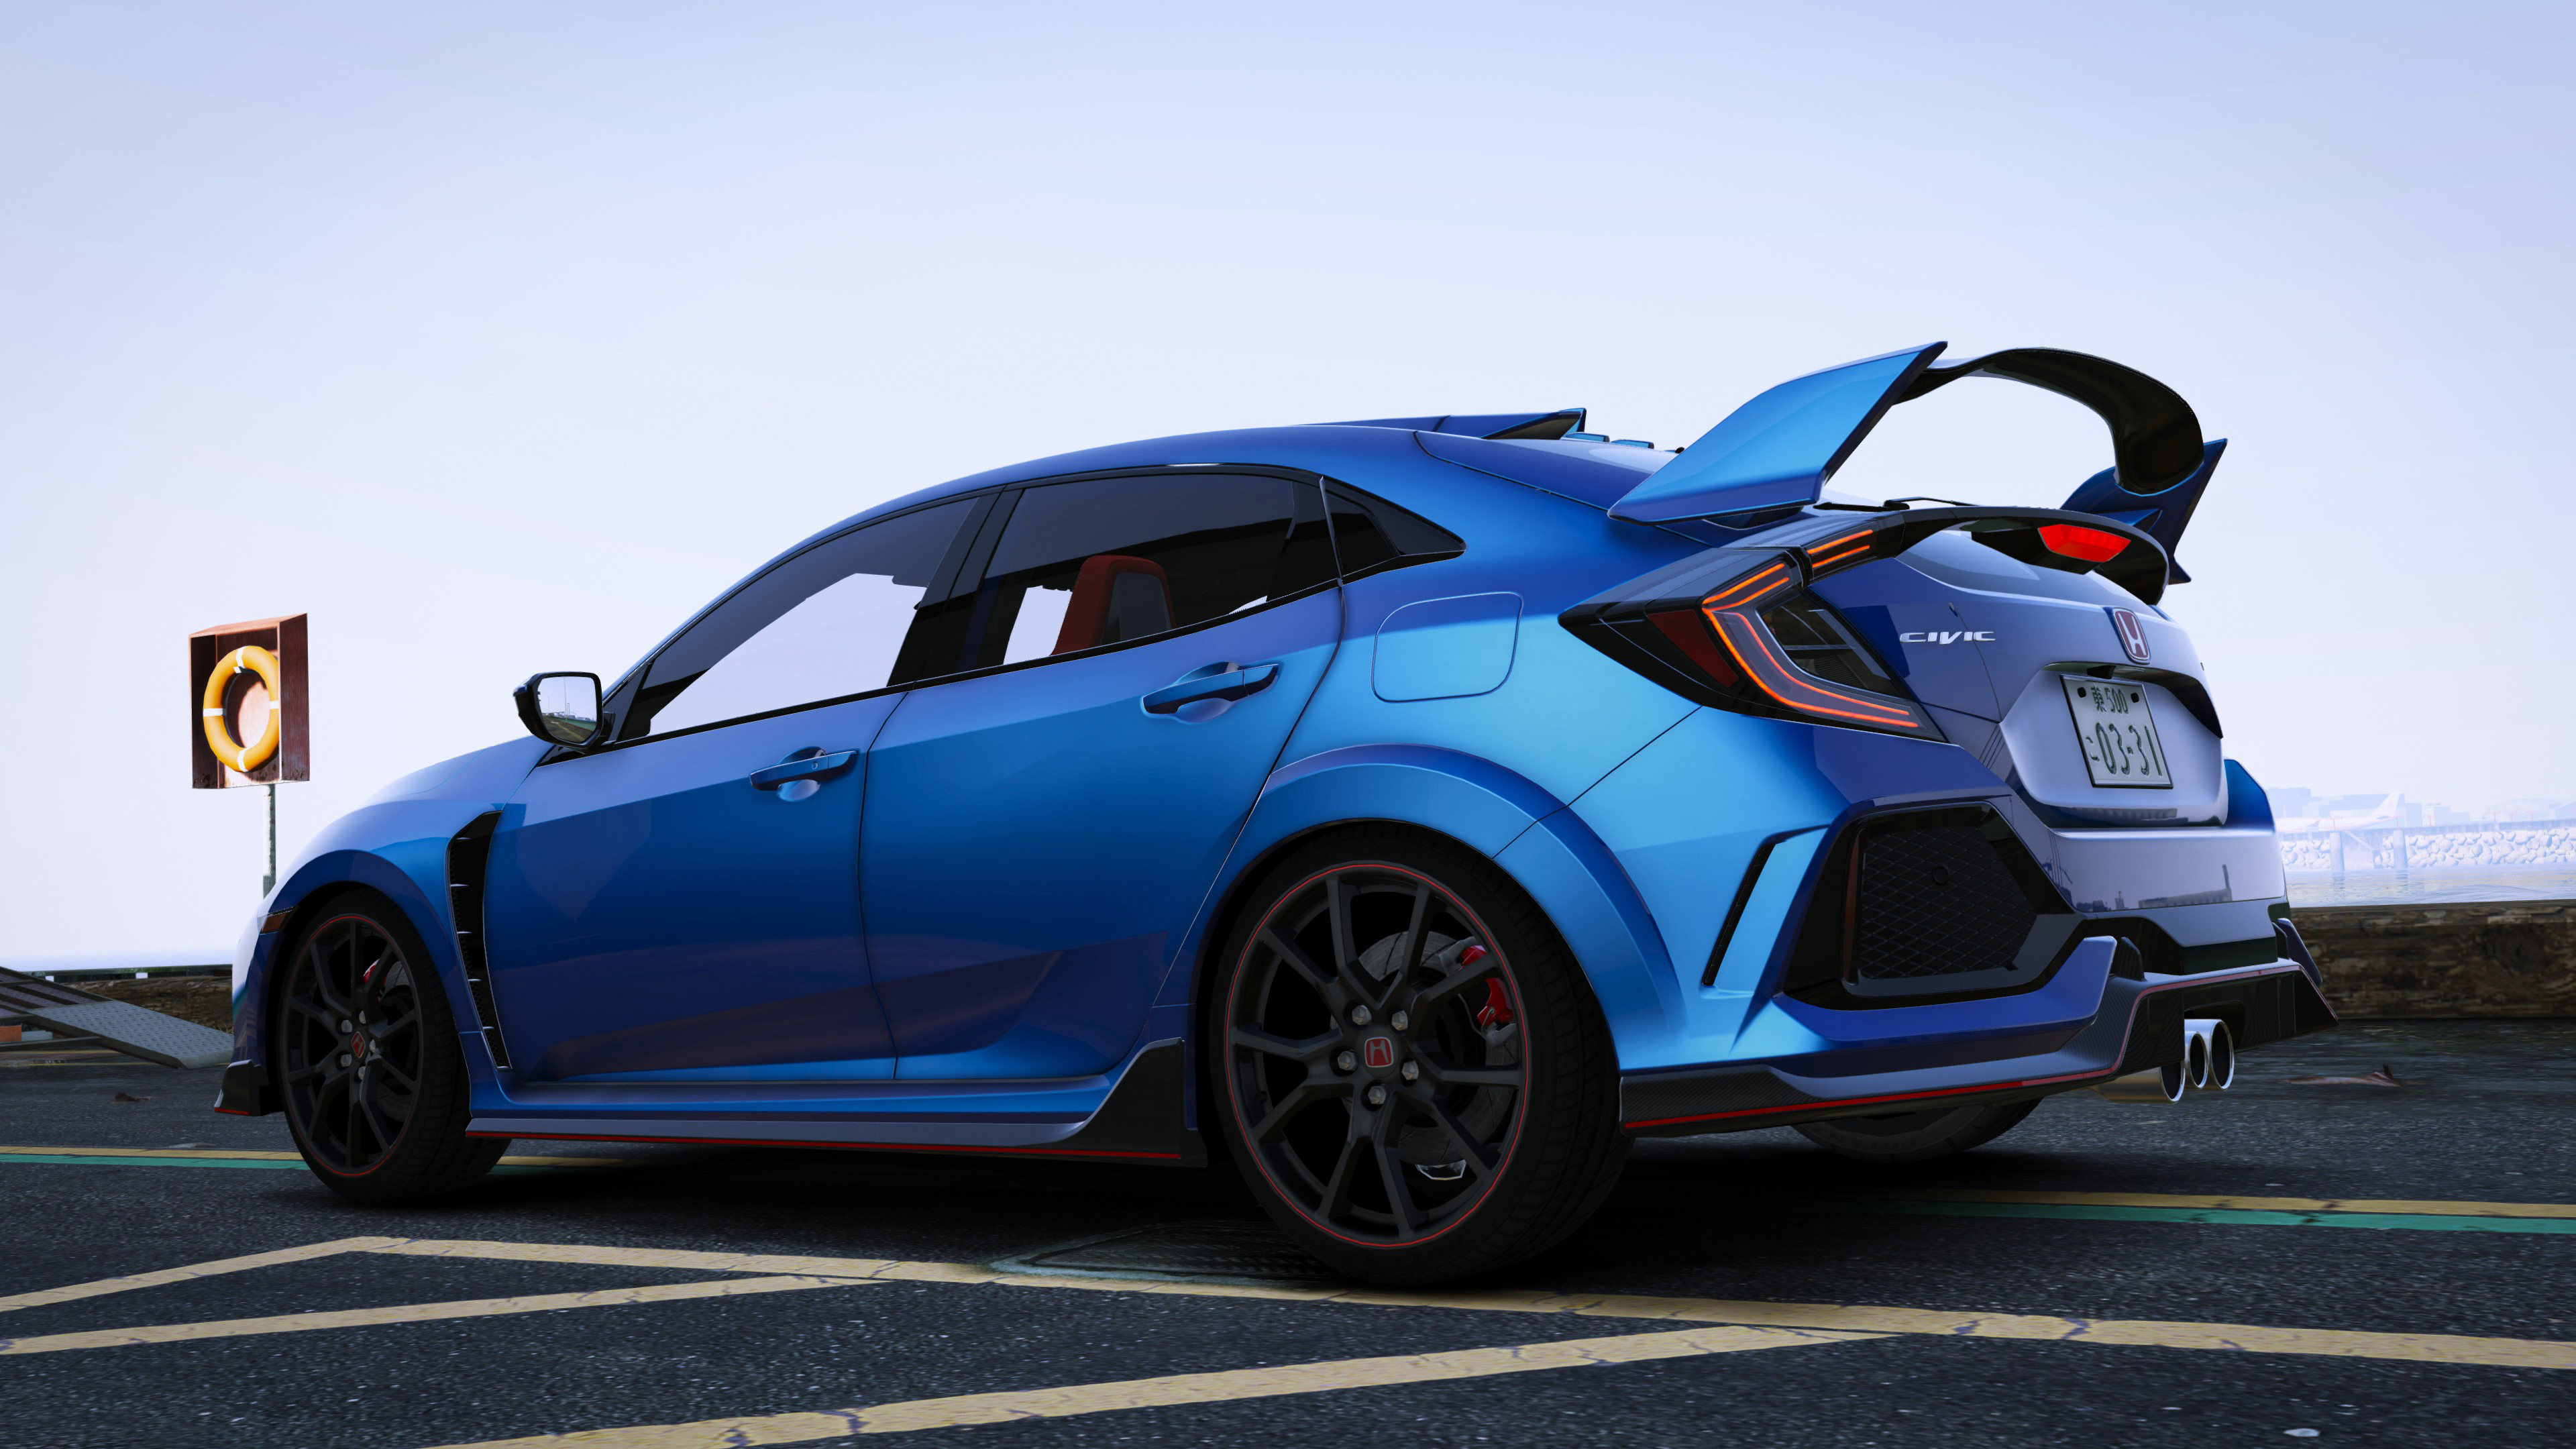 2018 honda civic type r fk8 modulo varis rhd gta5. Black Bedroom Furniture Sets. Home Design Ideas